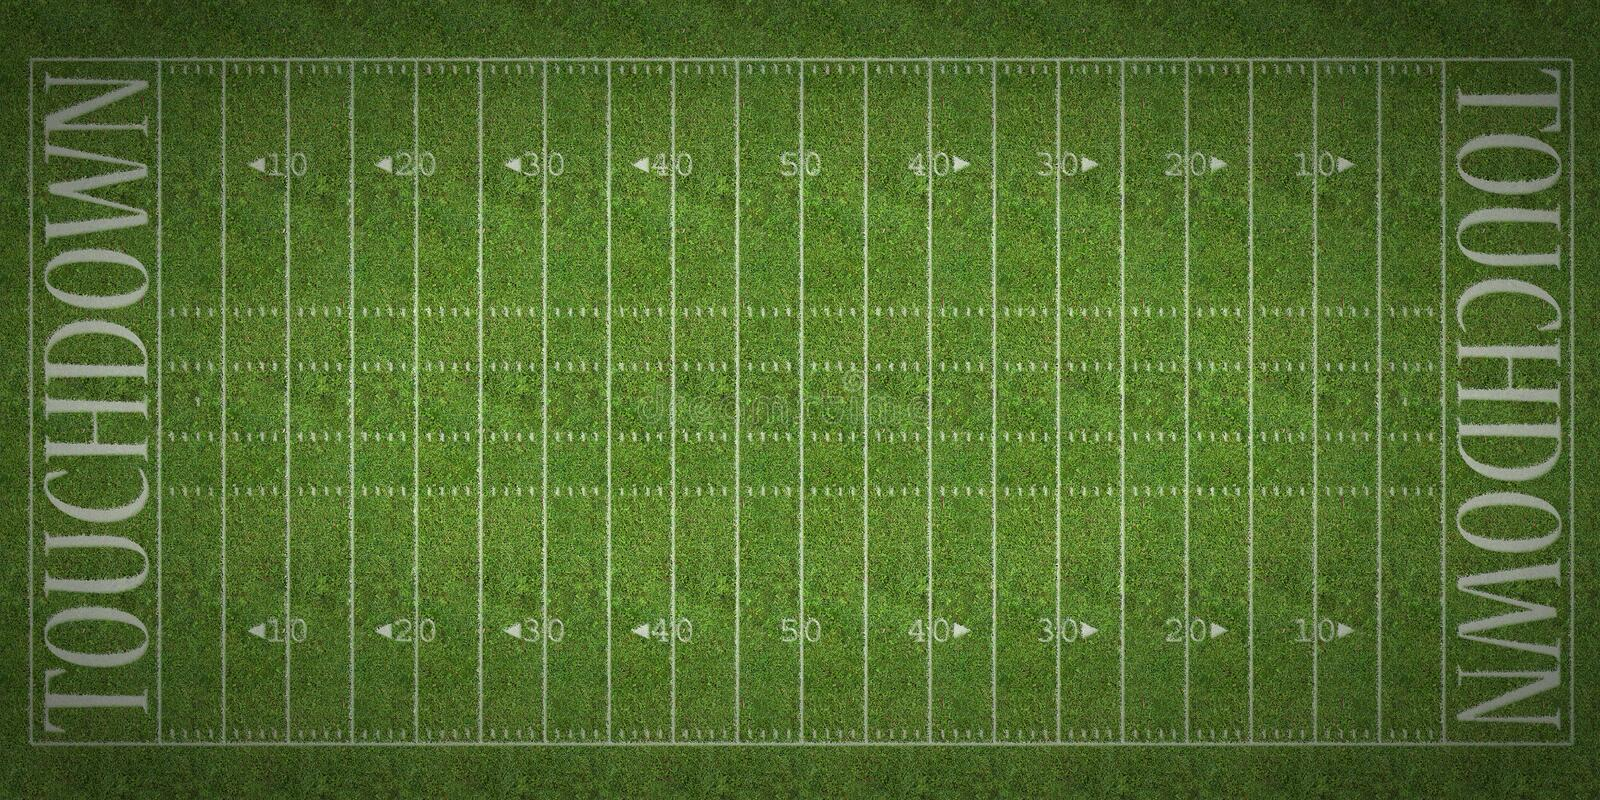 american football field stock photo image of turf arena